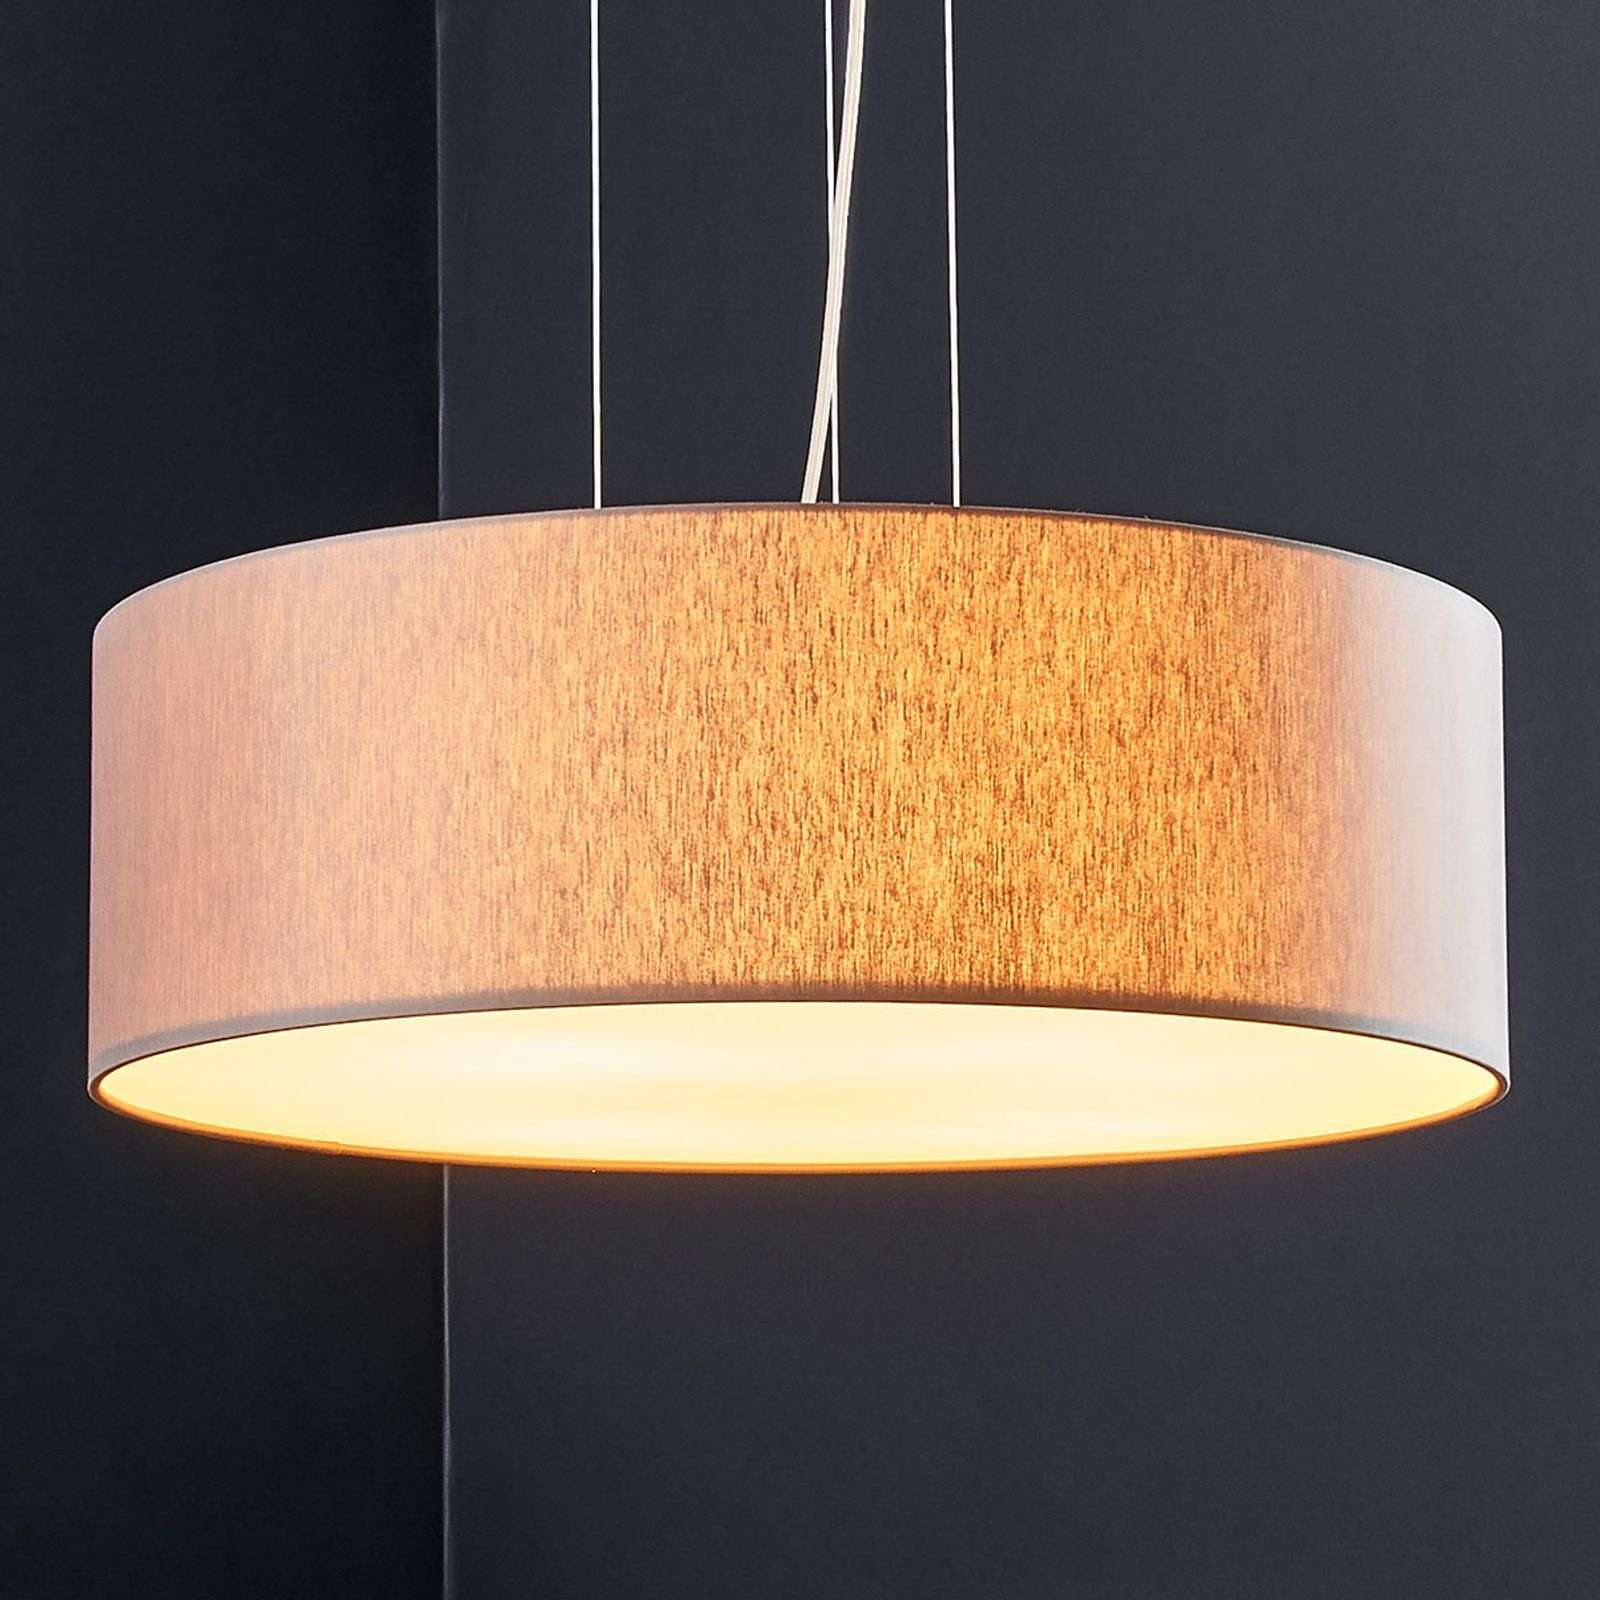 Suspension LED Gala, tissu couleur taupe